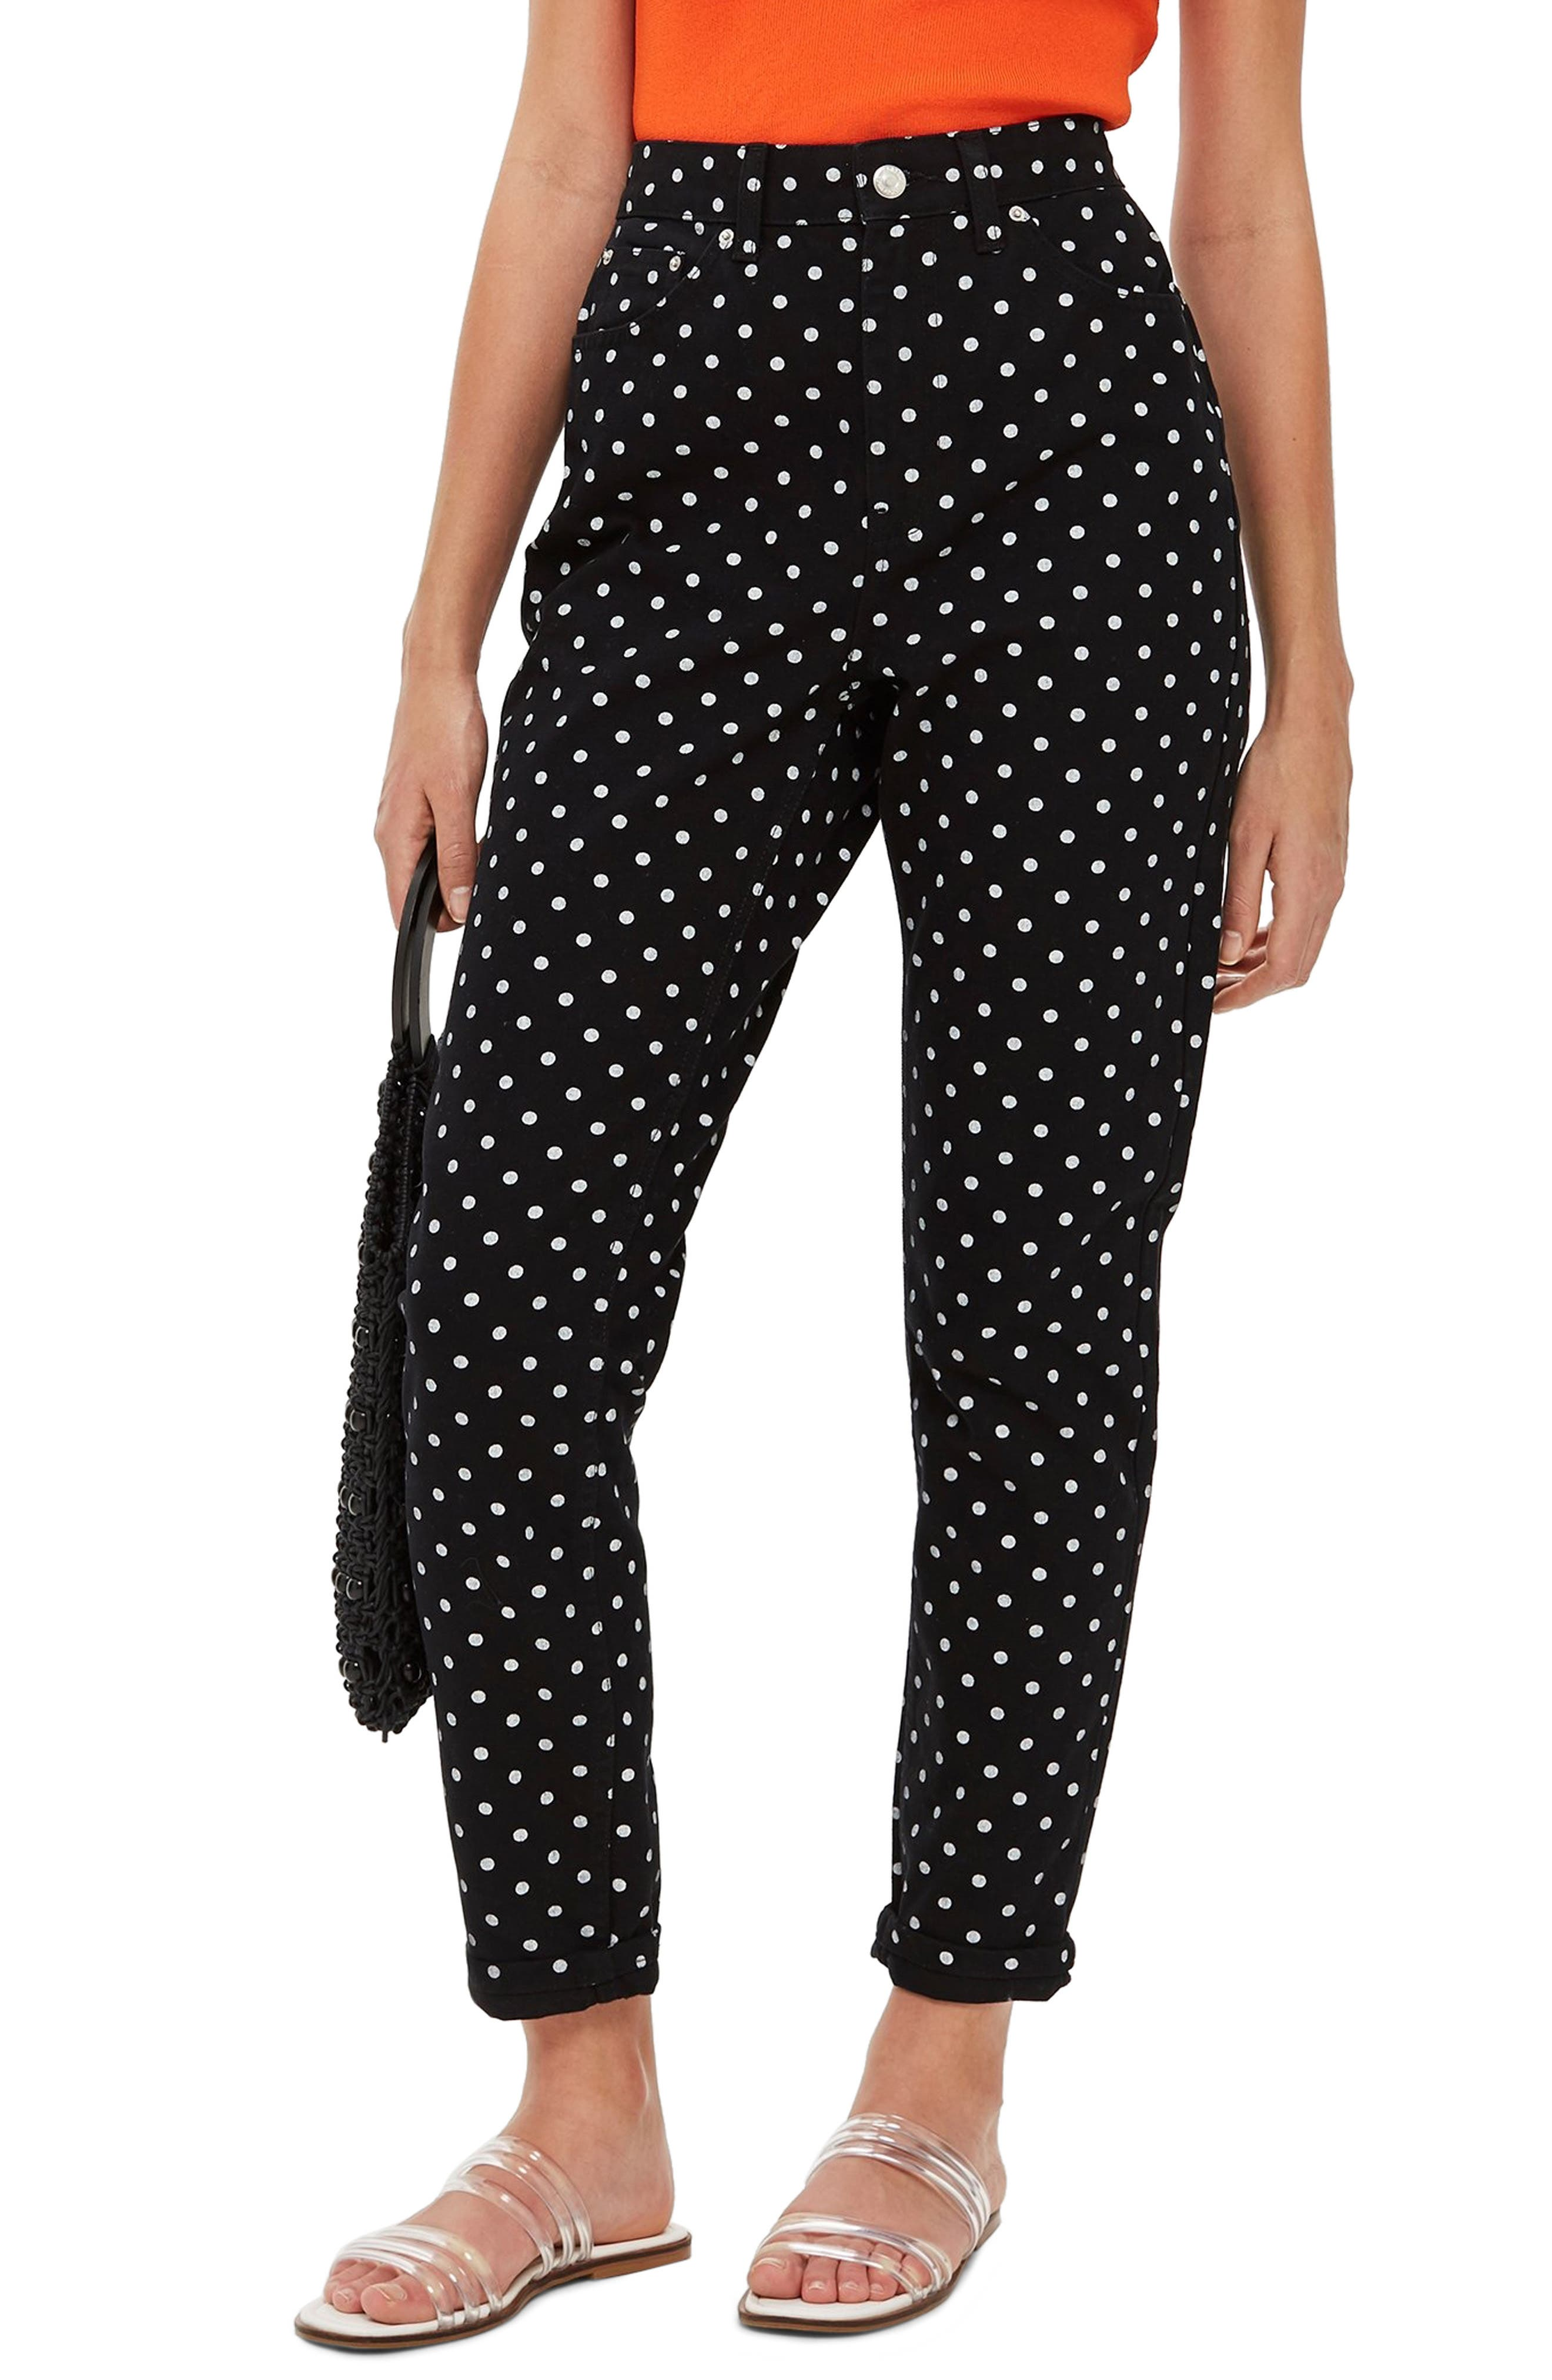 MOTO Polka Dot Mom Jeans,                             Main thumbnail 1, color,                             BLACK MULTI